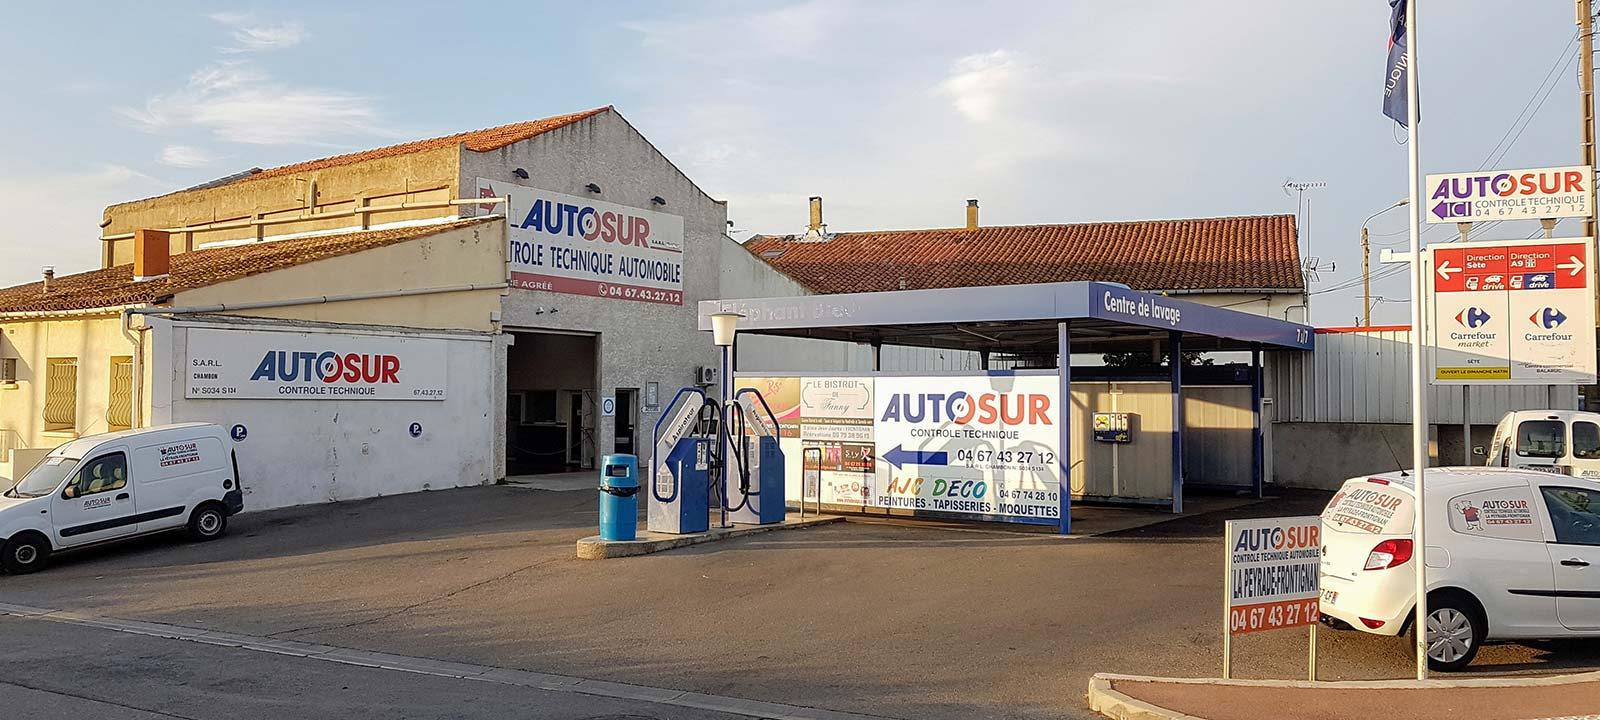 Autosur contr le technique automobile frontignan for Garage auto frontignan